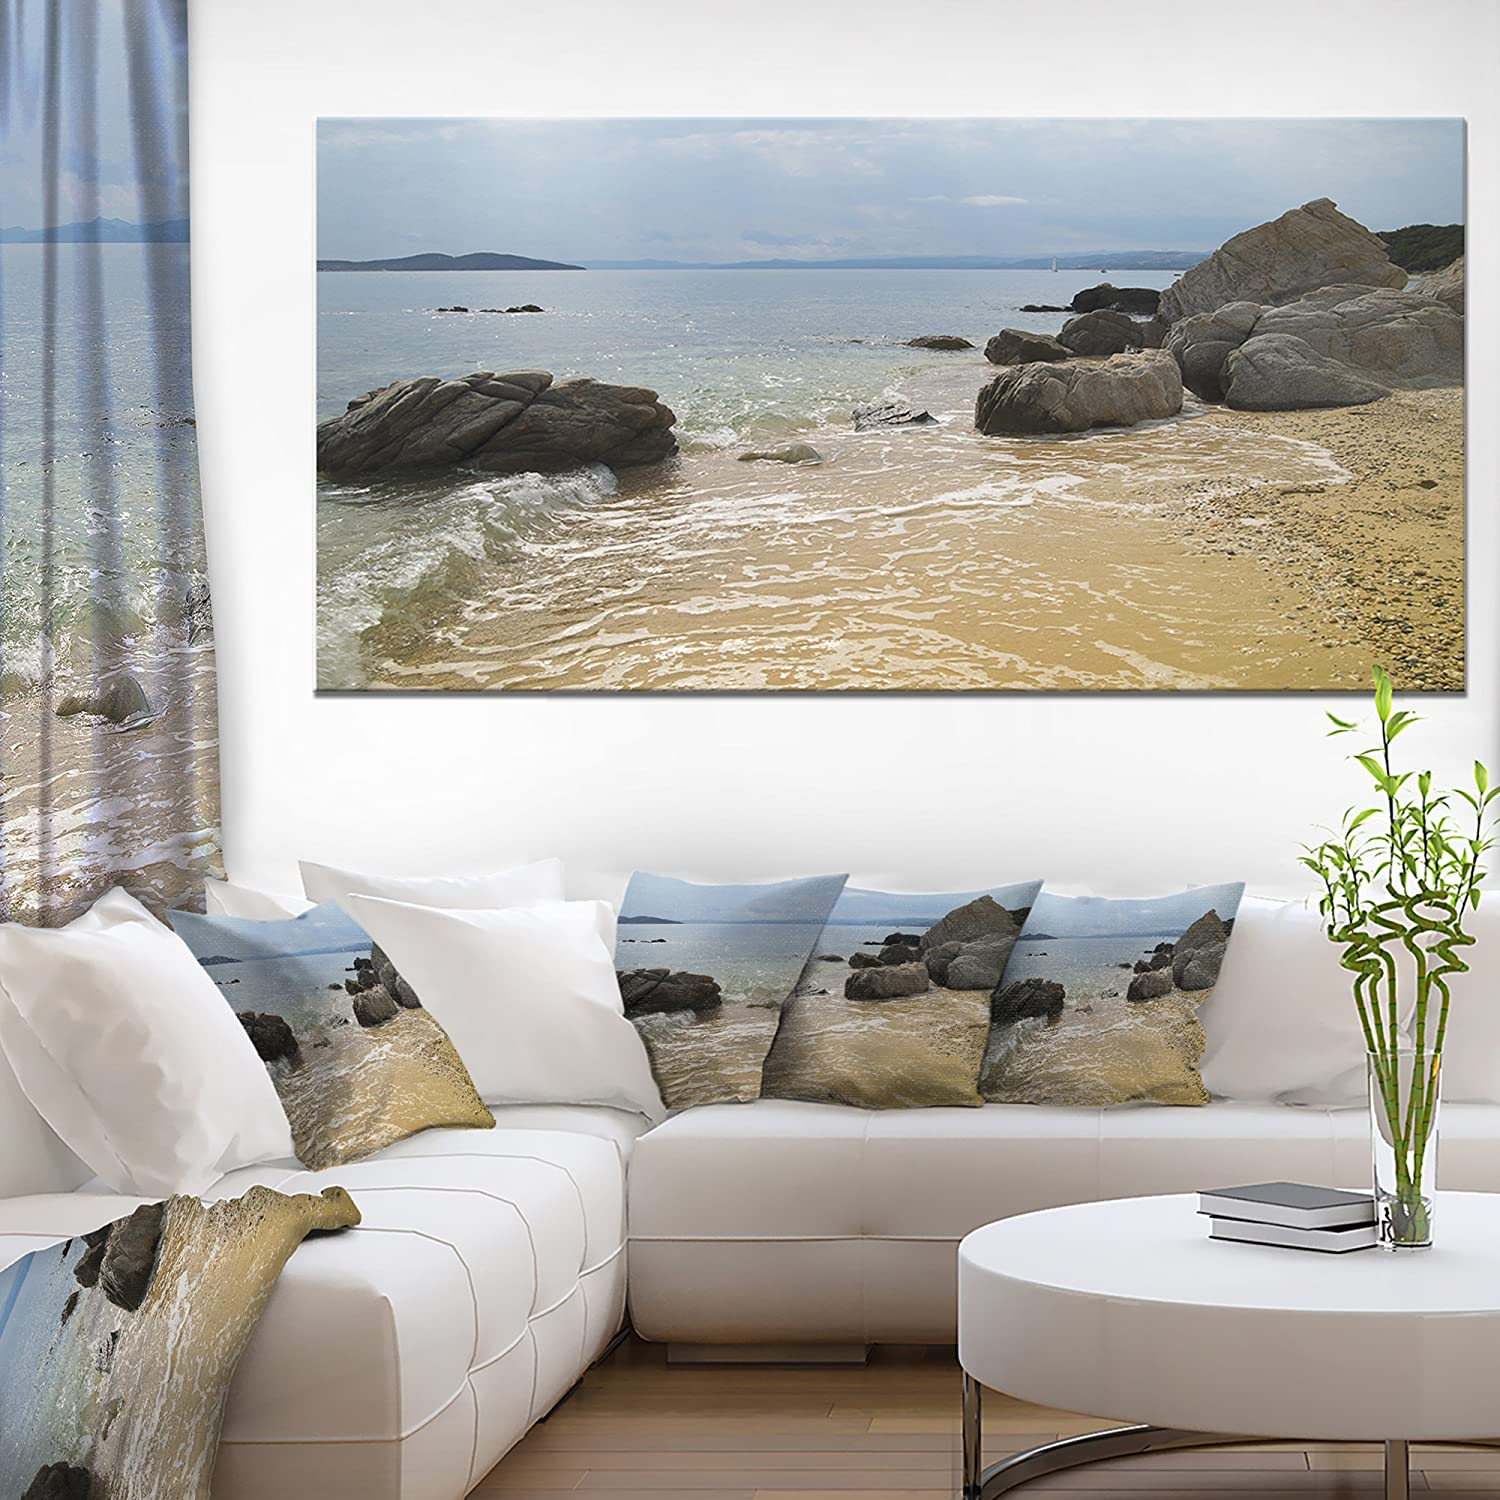 Designart Pt11147 60 28 Beautiful Sea View Of Rocky Coast Extra Large Seashore Canvas Art 60x28 1 Piece 28 X 60 X 2 Home Kitchen